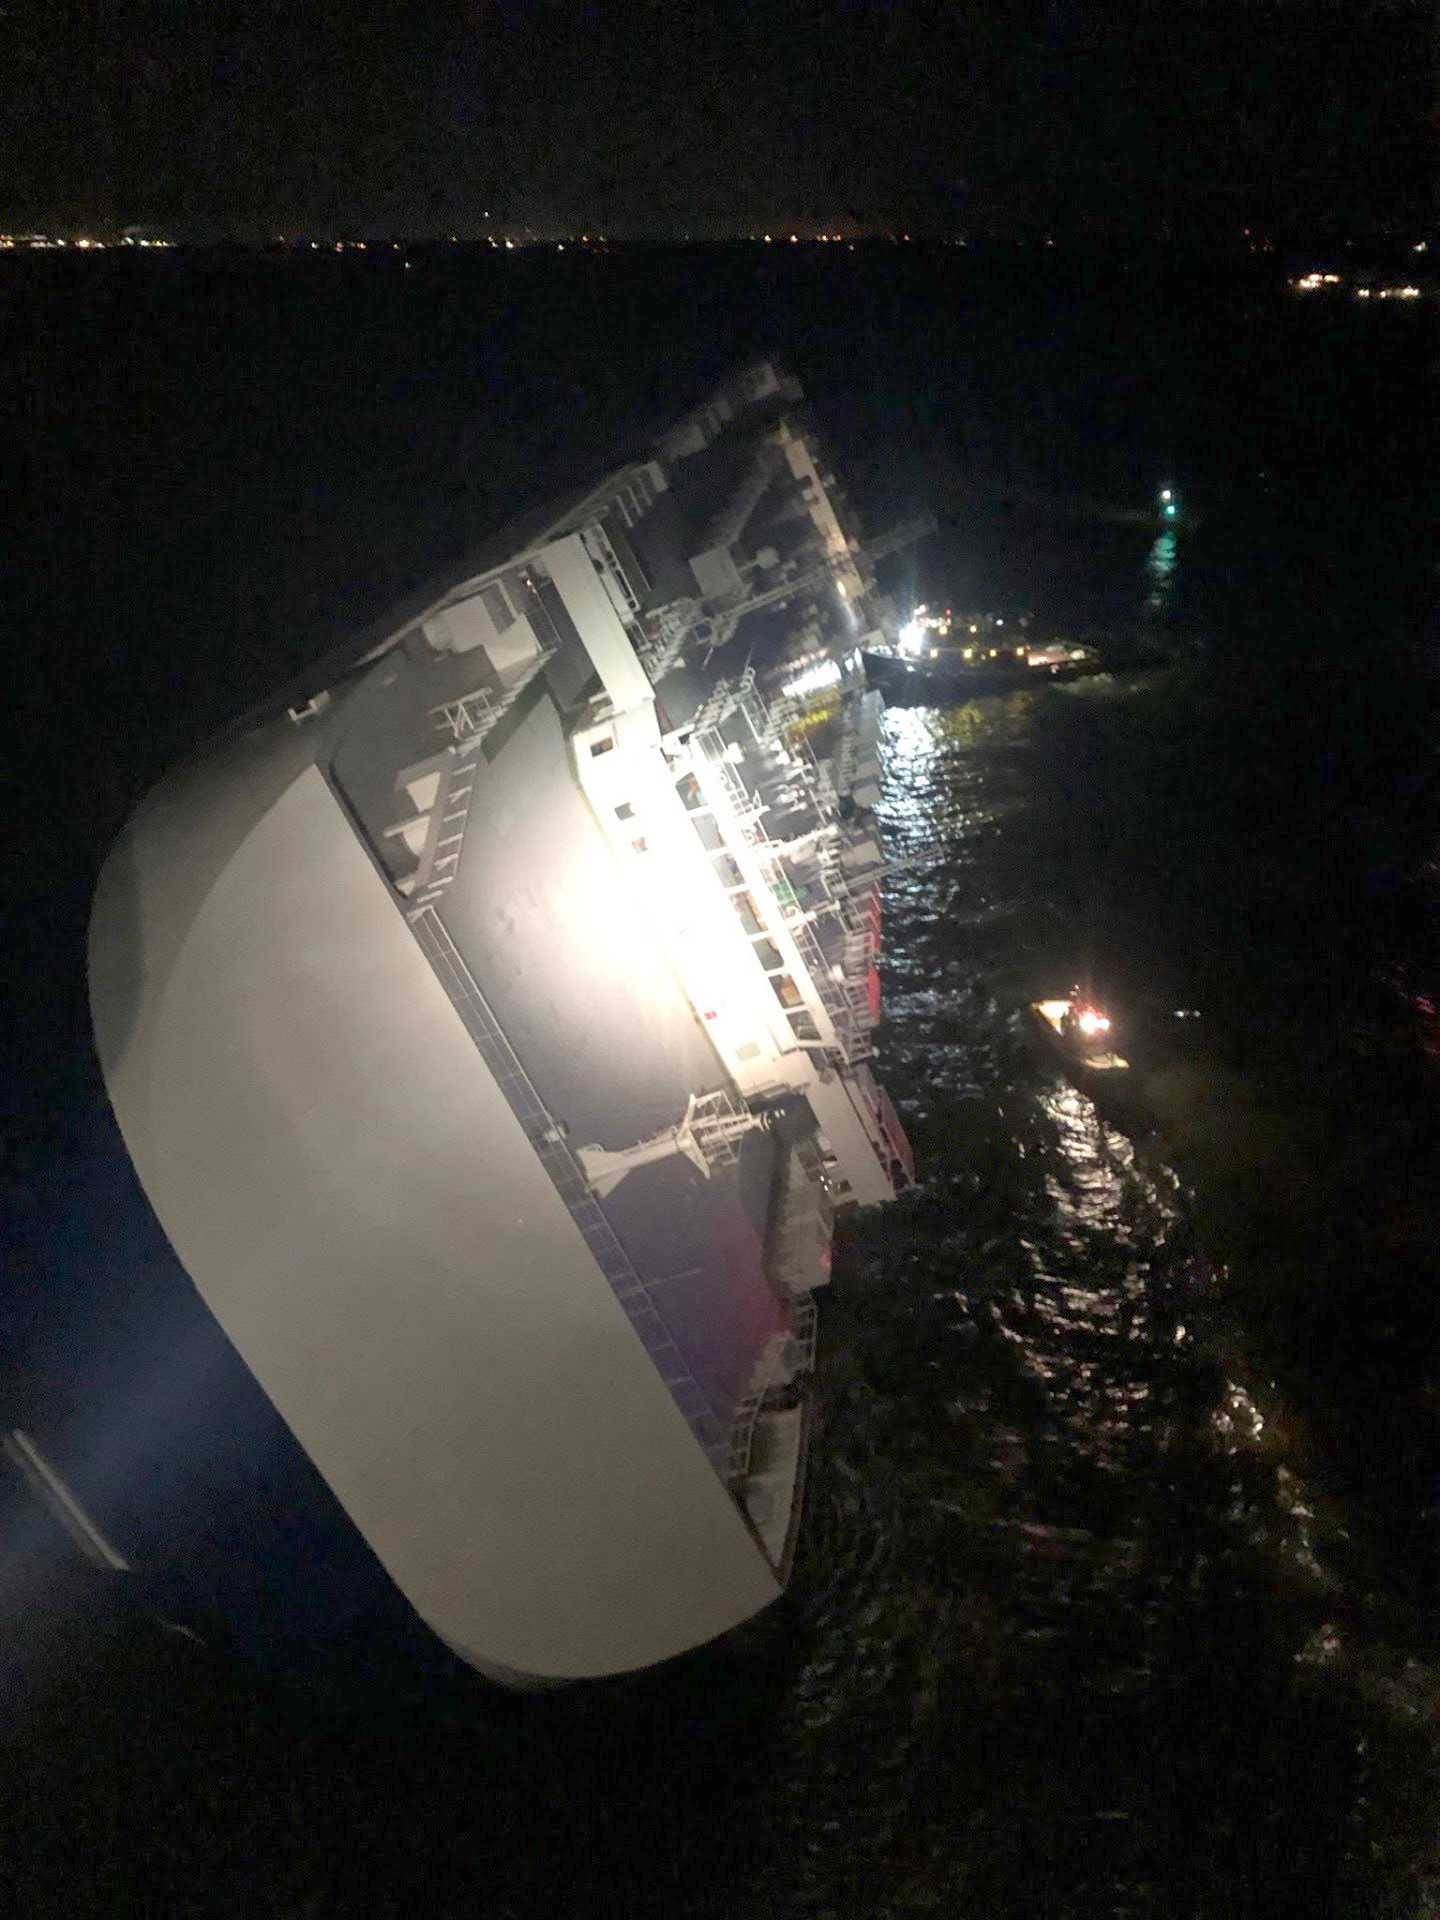 4 Crew Members Missing After Cargo Vessel Overturns and Catches Fire Near Georgia Coast